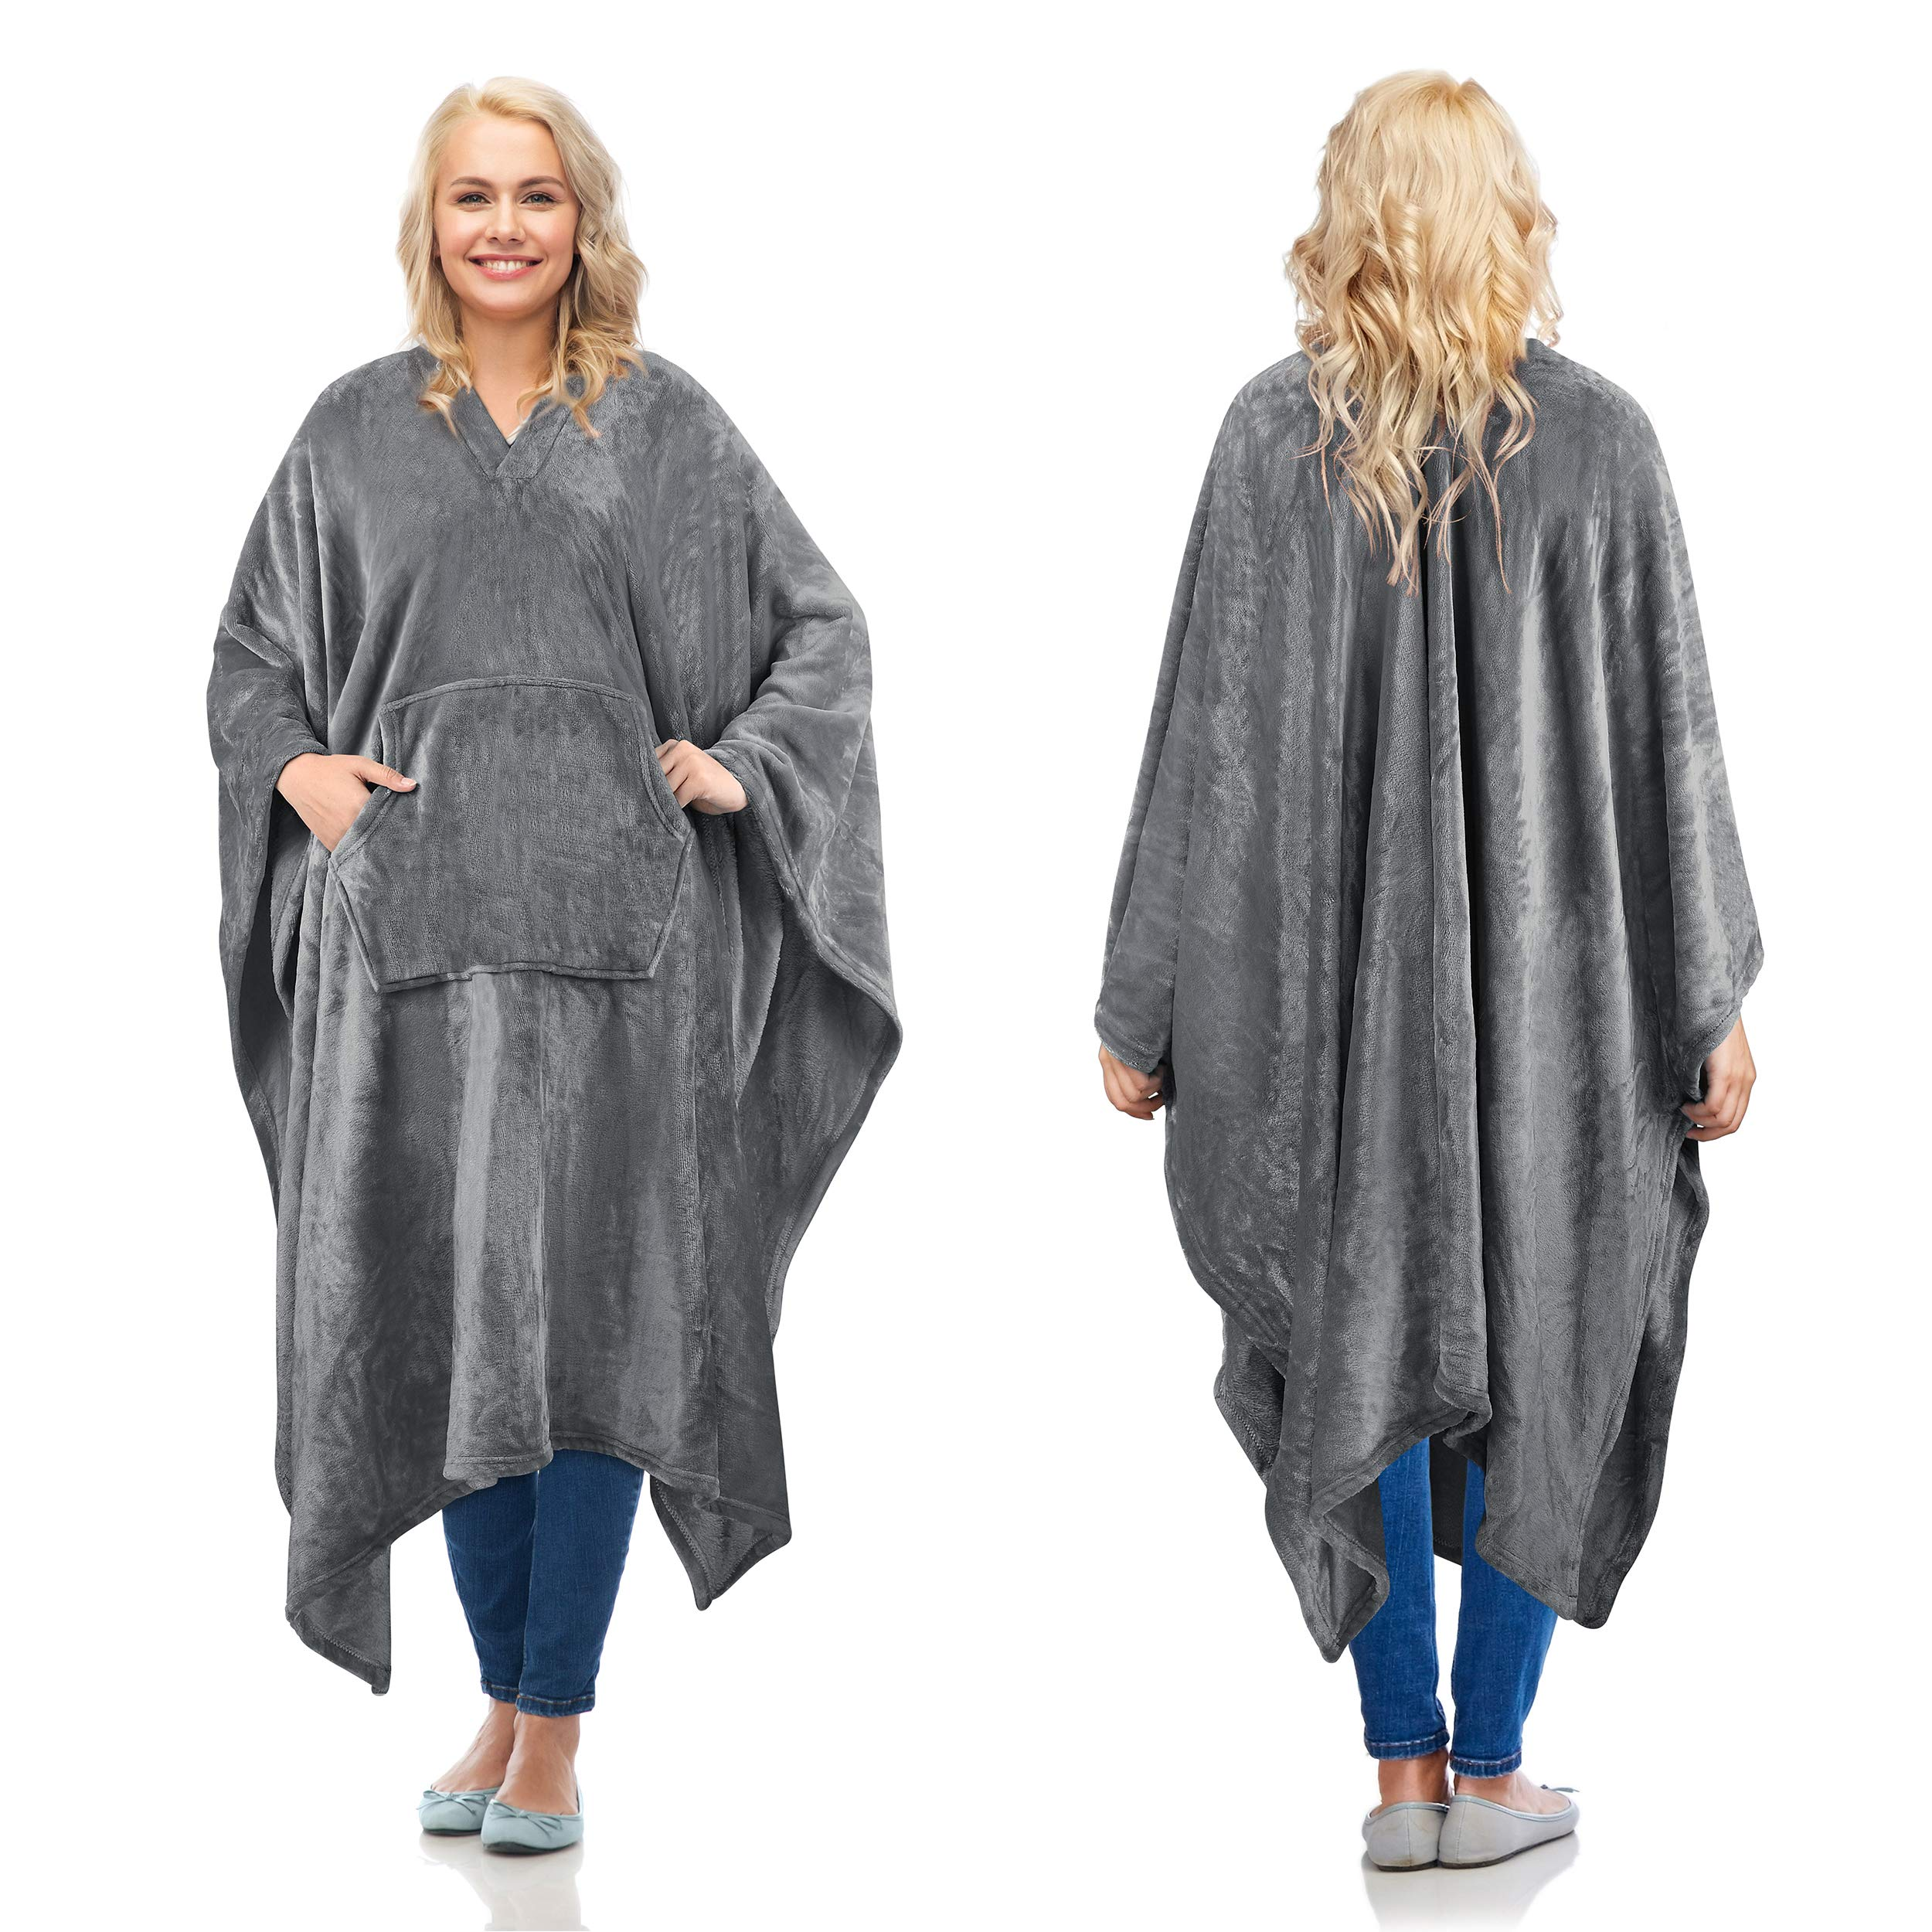 Amazon.com: Fleece Wearable Blanket Poncho for Adult Women Men,Wrap Blanket  Cape with Pocket |Warm,Soft,Cozy,Snuggly,Comfort Gift,No Sleeves|All  Season,Gray: Home & Kitchen